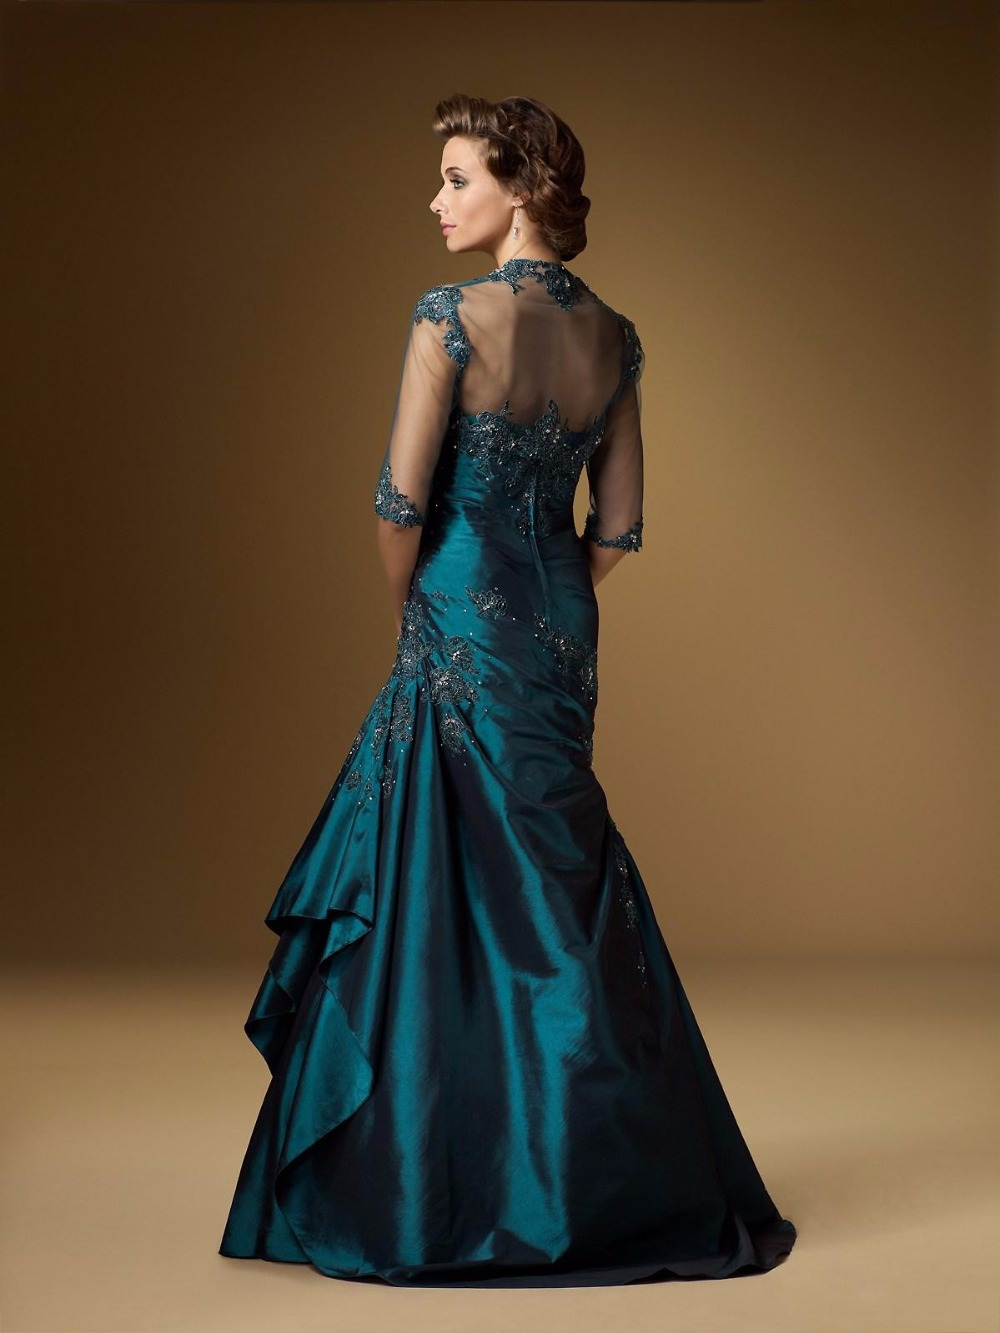 Stunning Beautiful 2017 Mother Bride Dress Lace Jacket Taffeta Wedding Party Teal Ruched Formal Gowns In Of The Dresses From Weddings